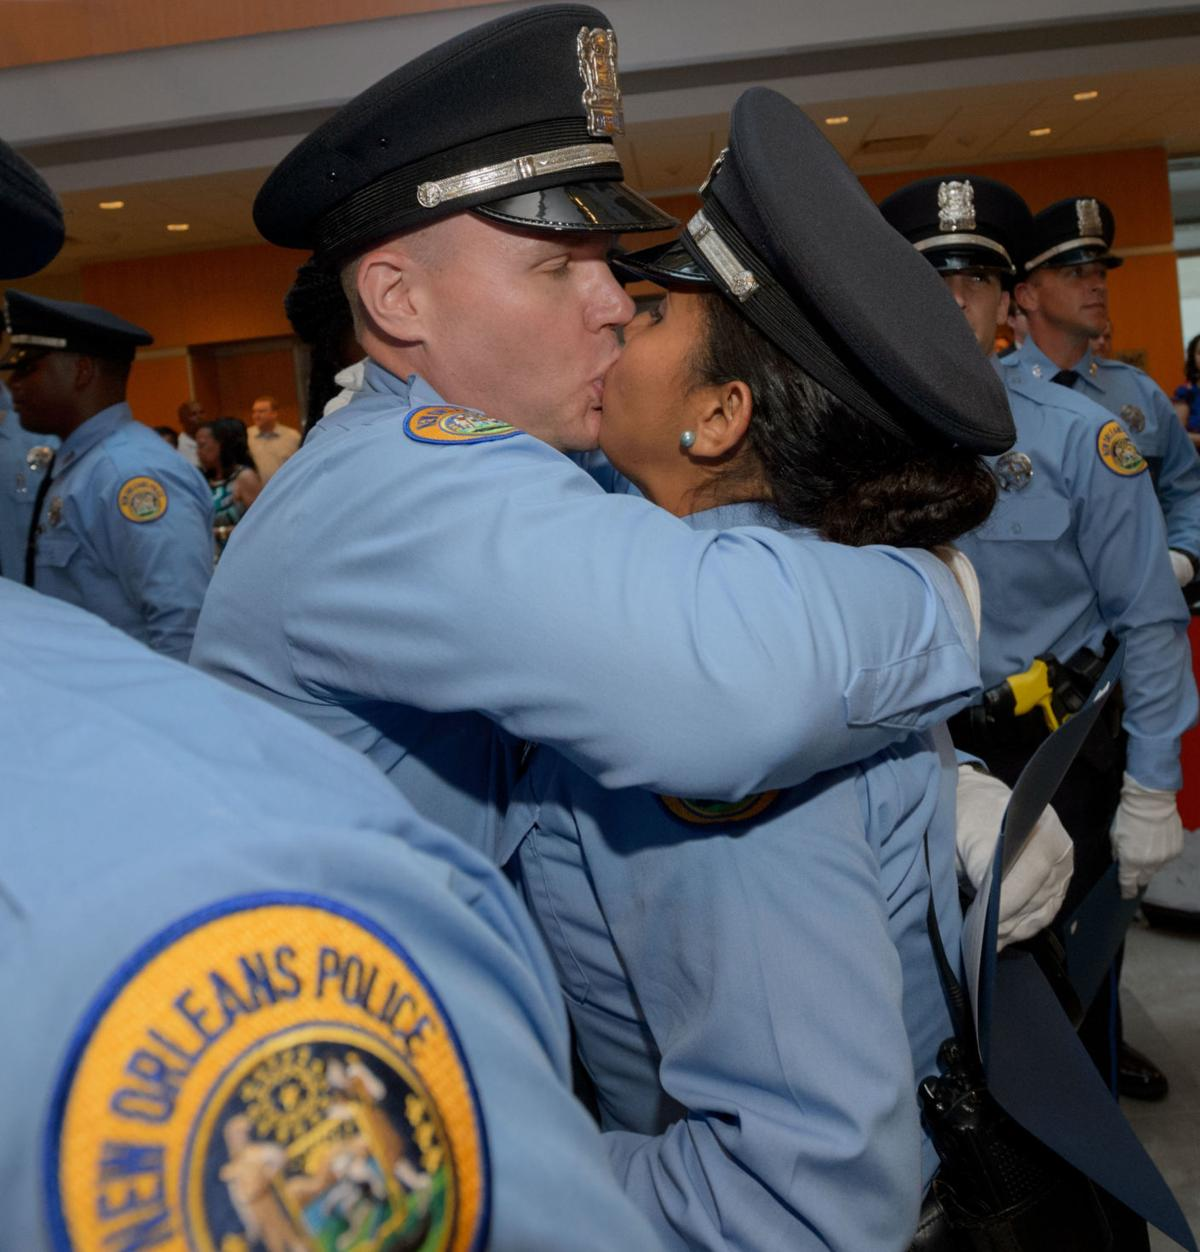 New Orleans Police Department Graduates 26 New Recruits